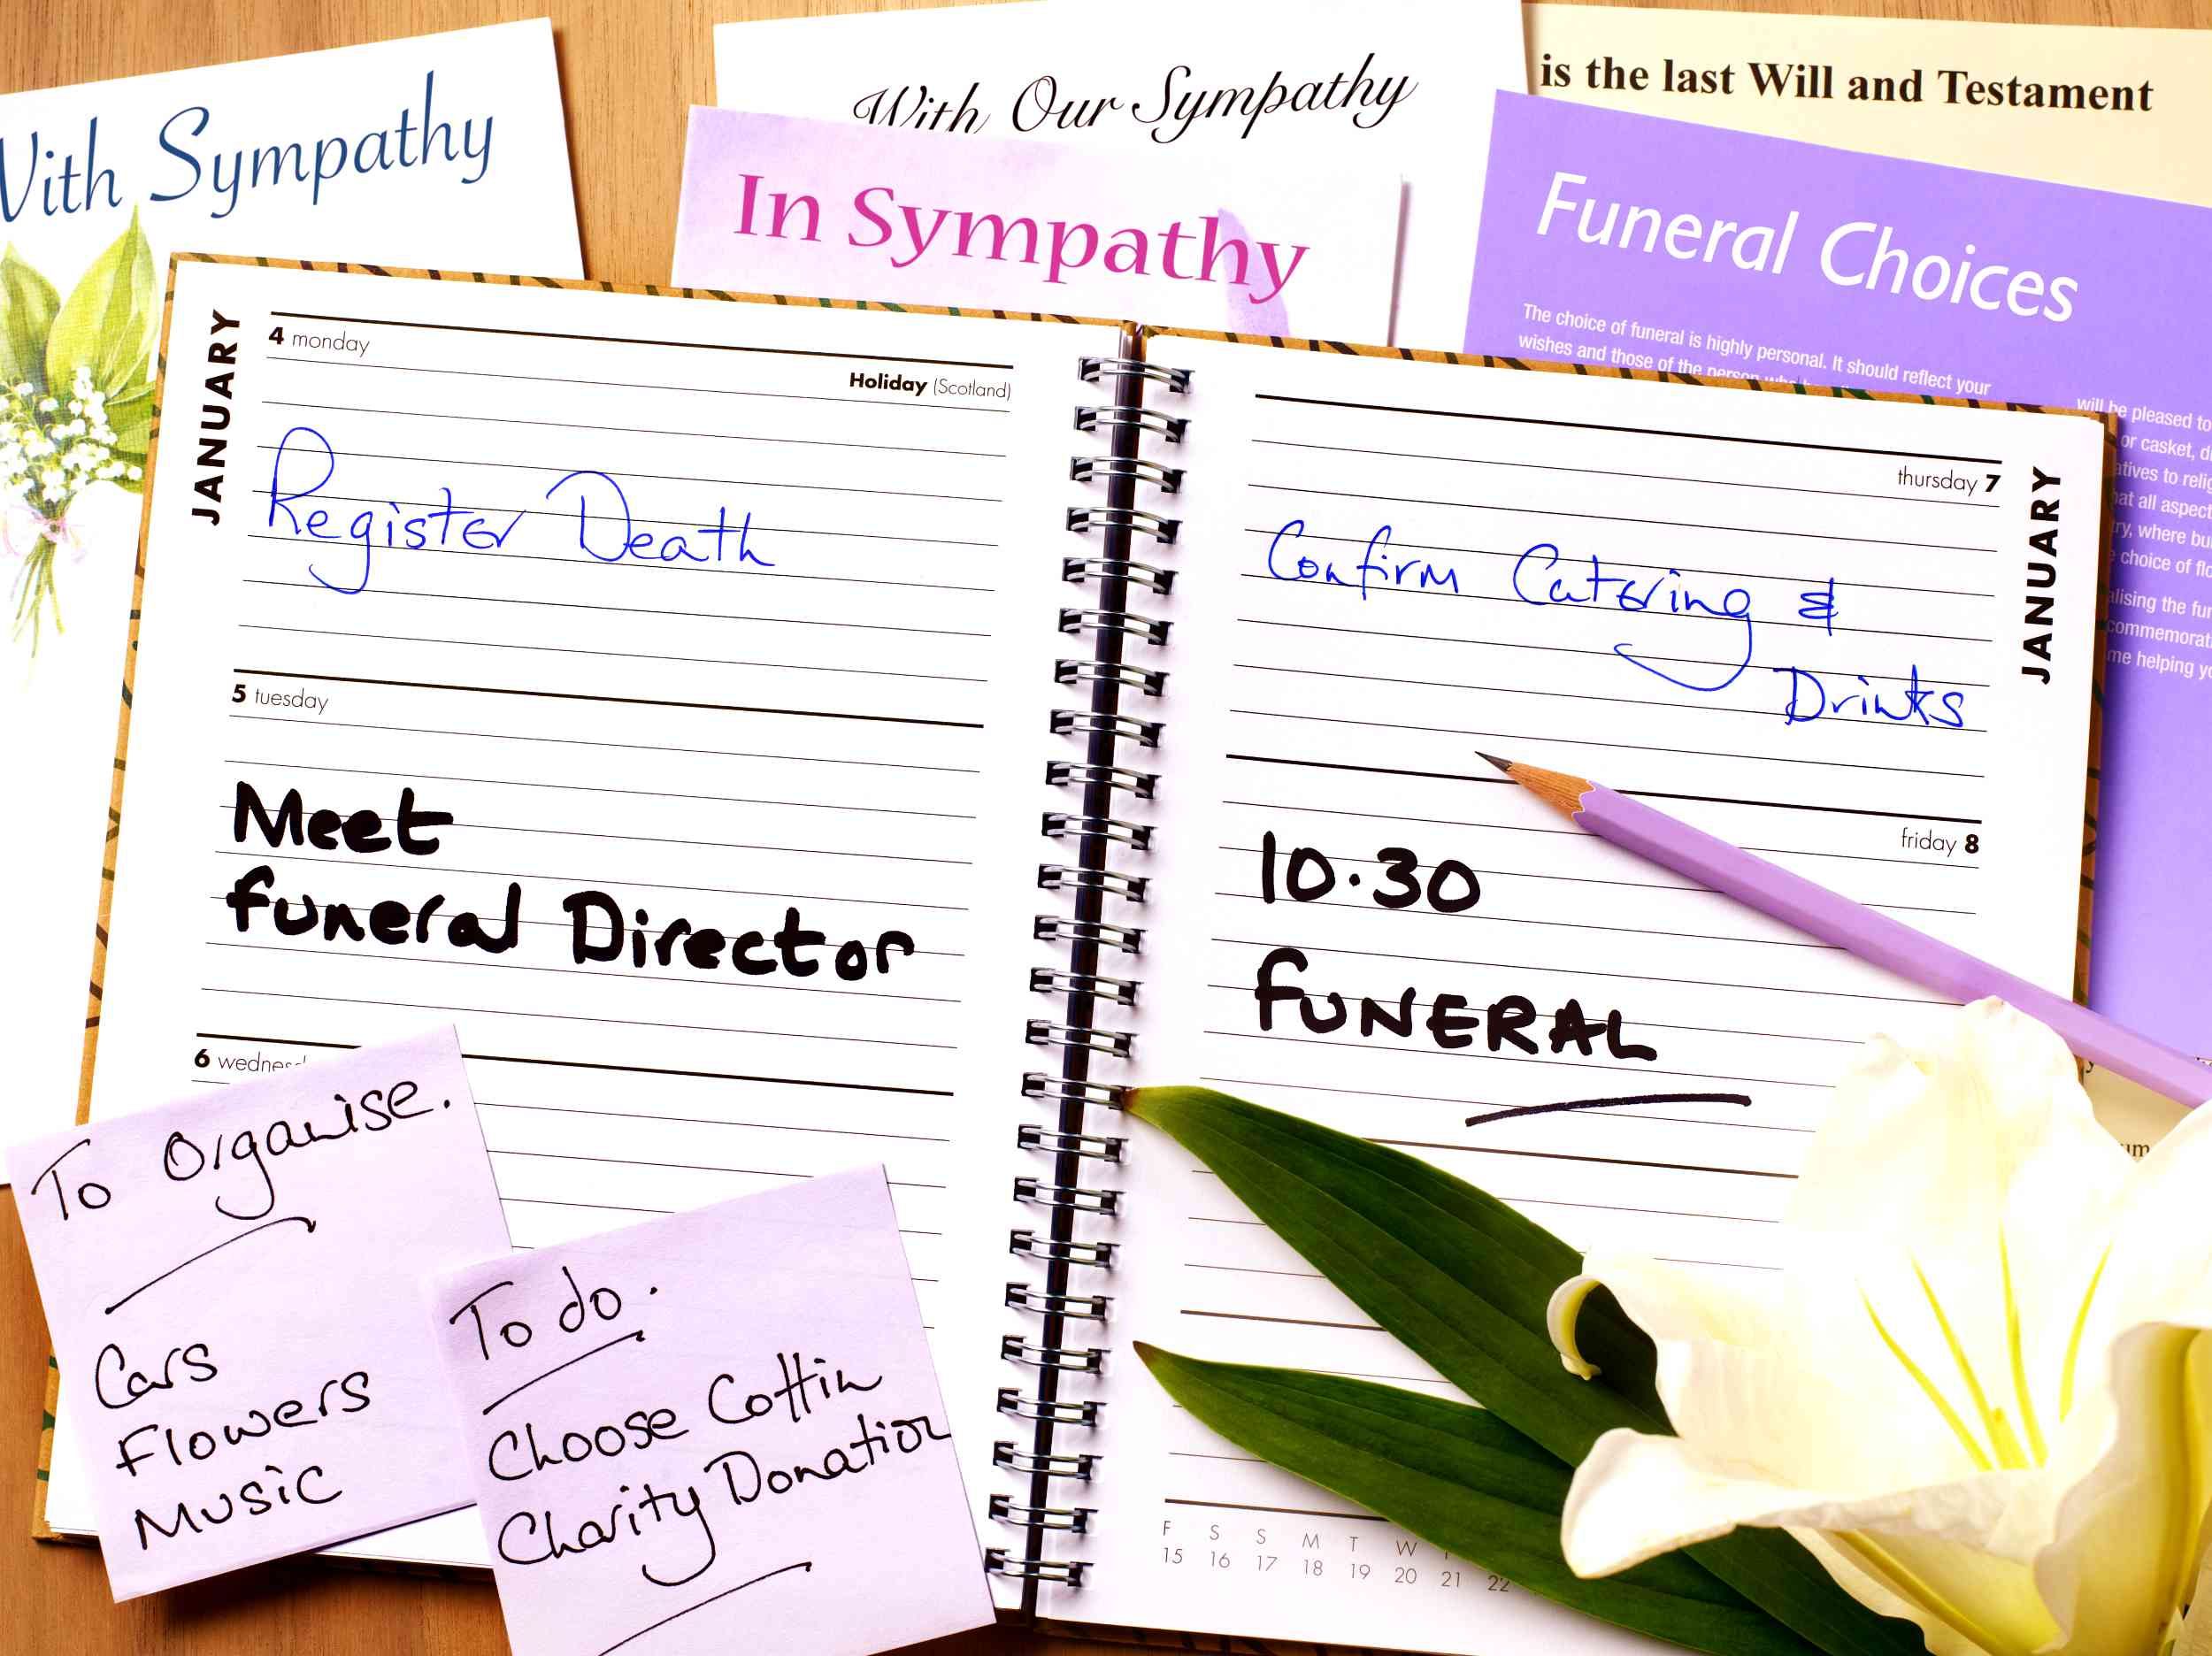 A funeral planning date book and info